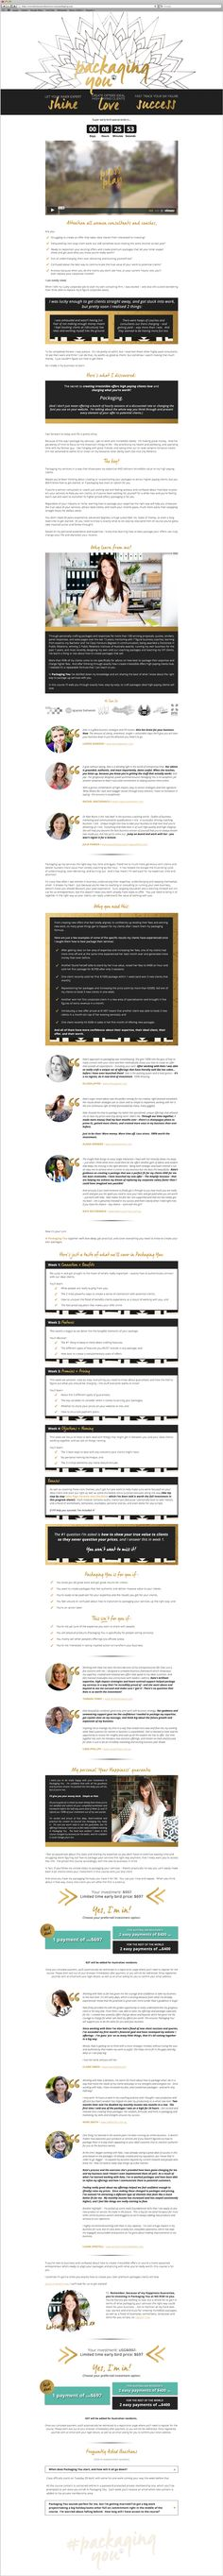 Packaging You sales page